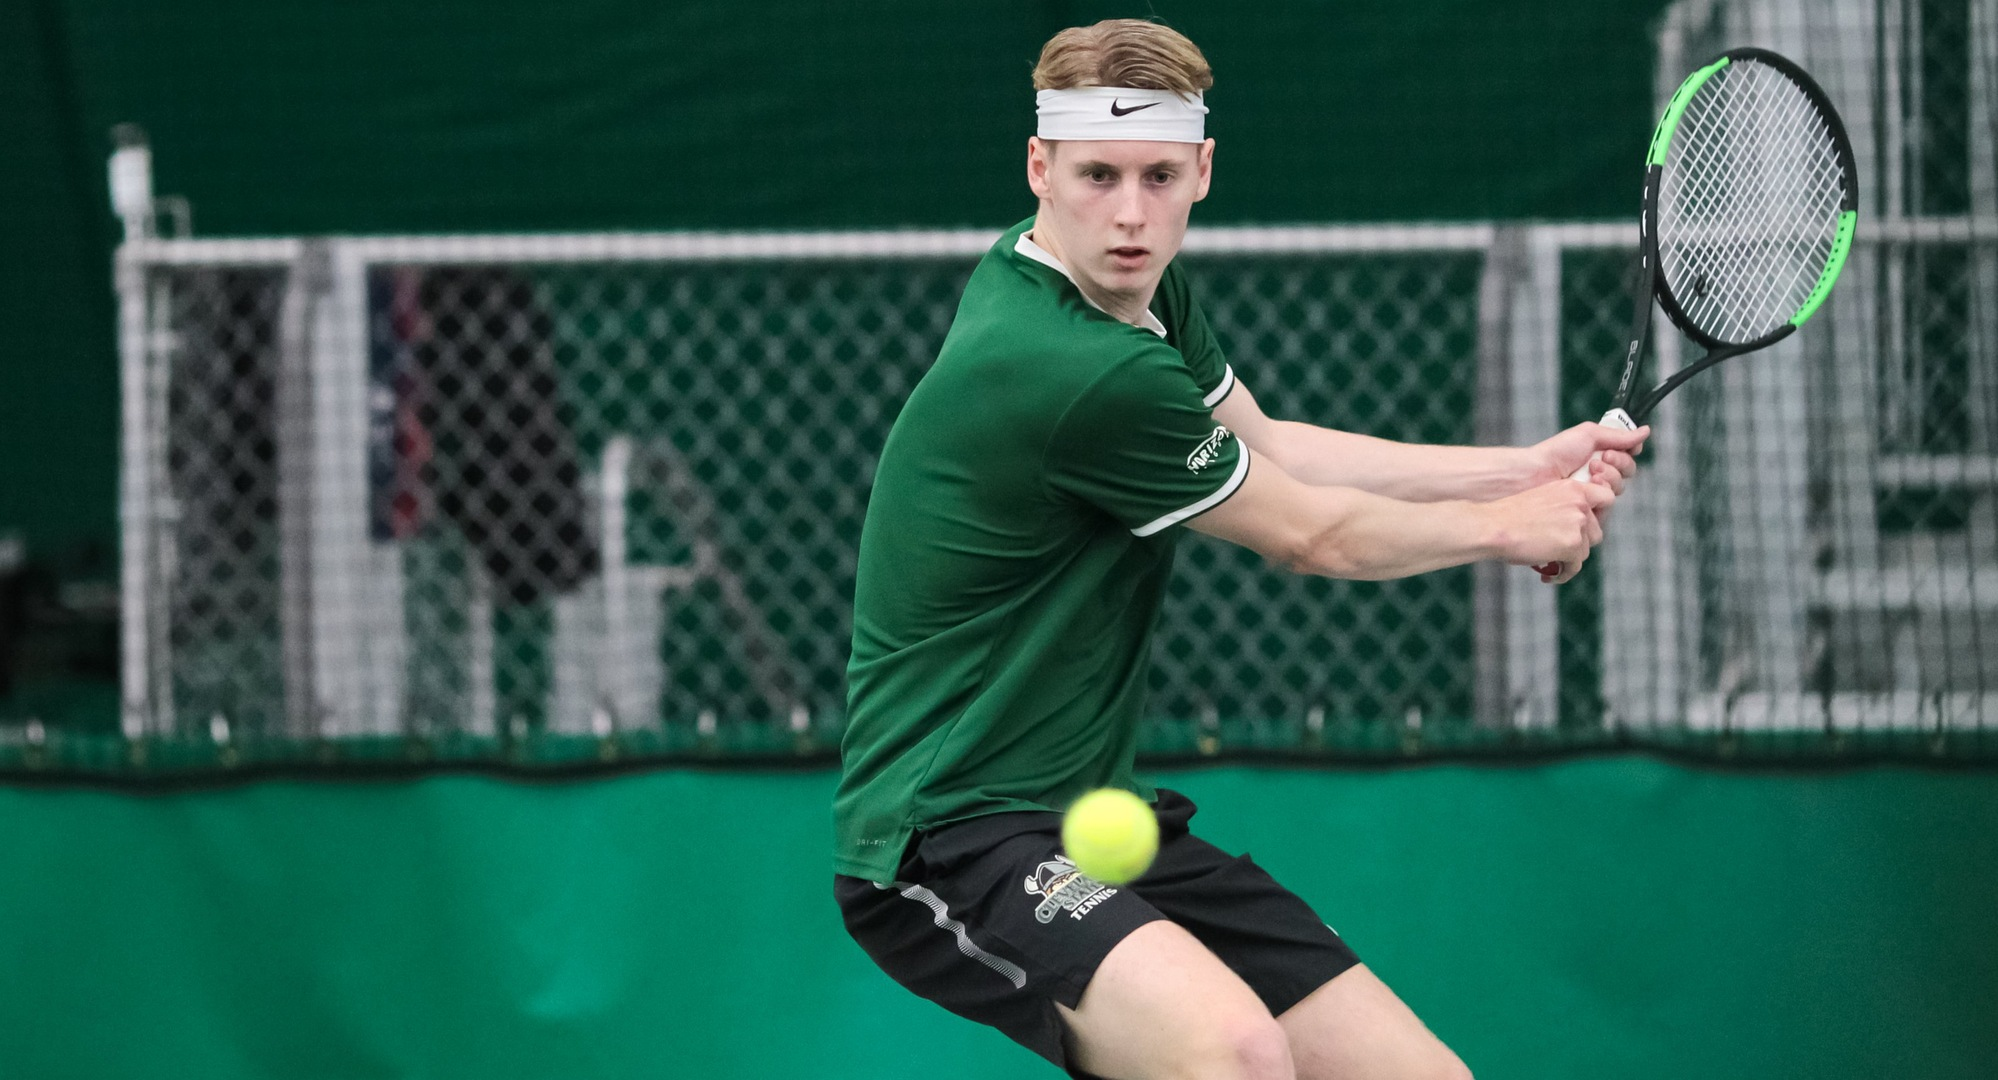 Men's Tennis Extends Winstreak With 5-2 Victory Over Ball State